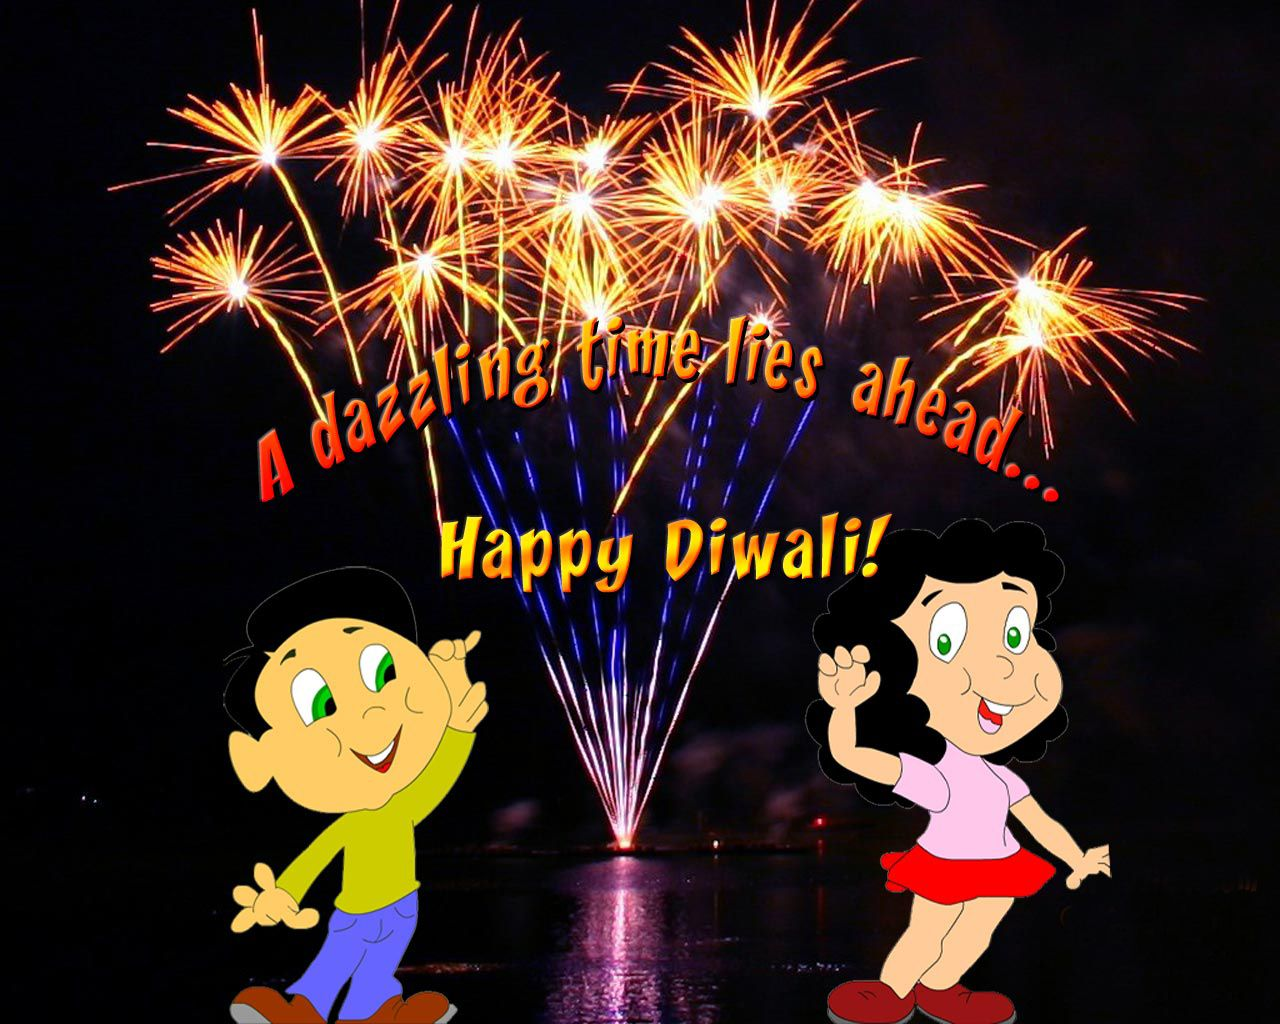 Wallpaper download diwali - Click Here To Download In Hd Format Download Hd Happy Diwali Wallpaper Http